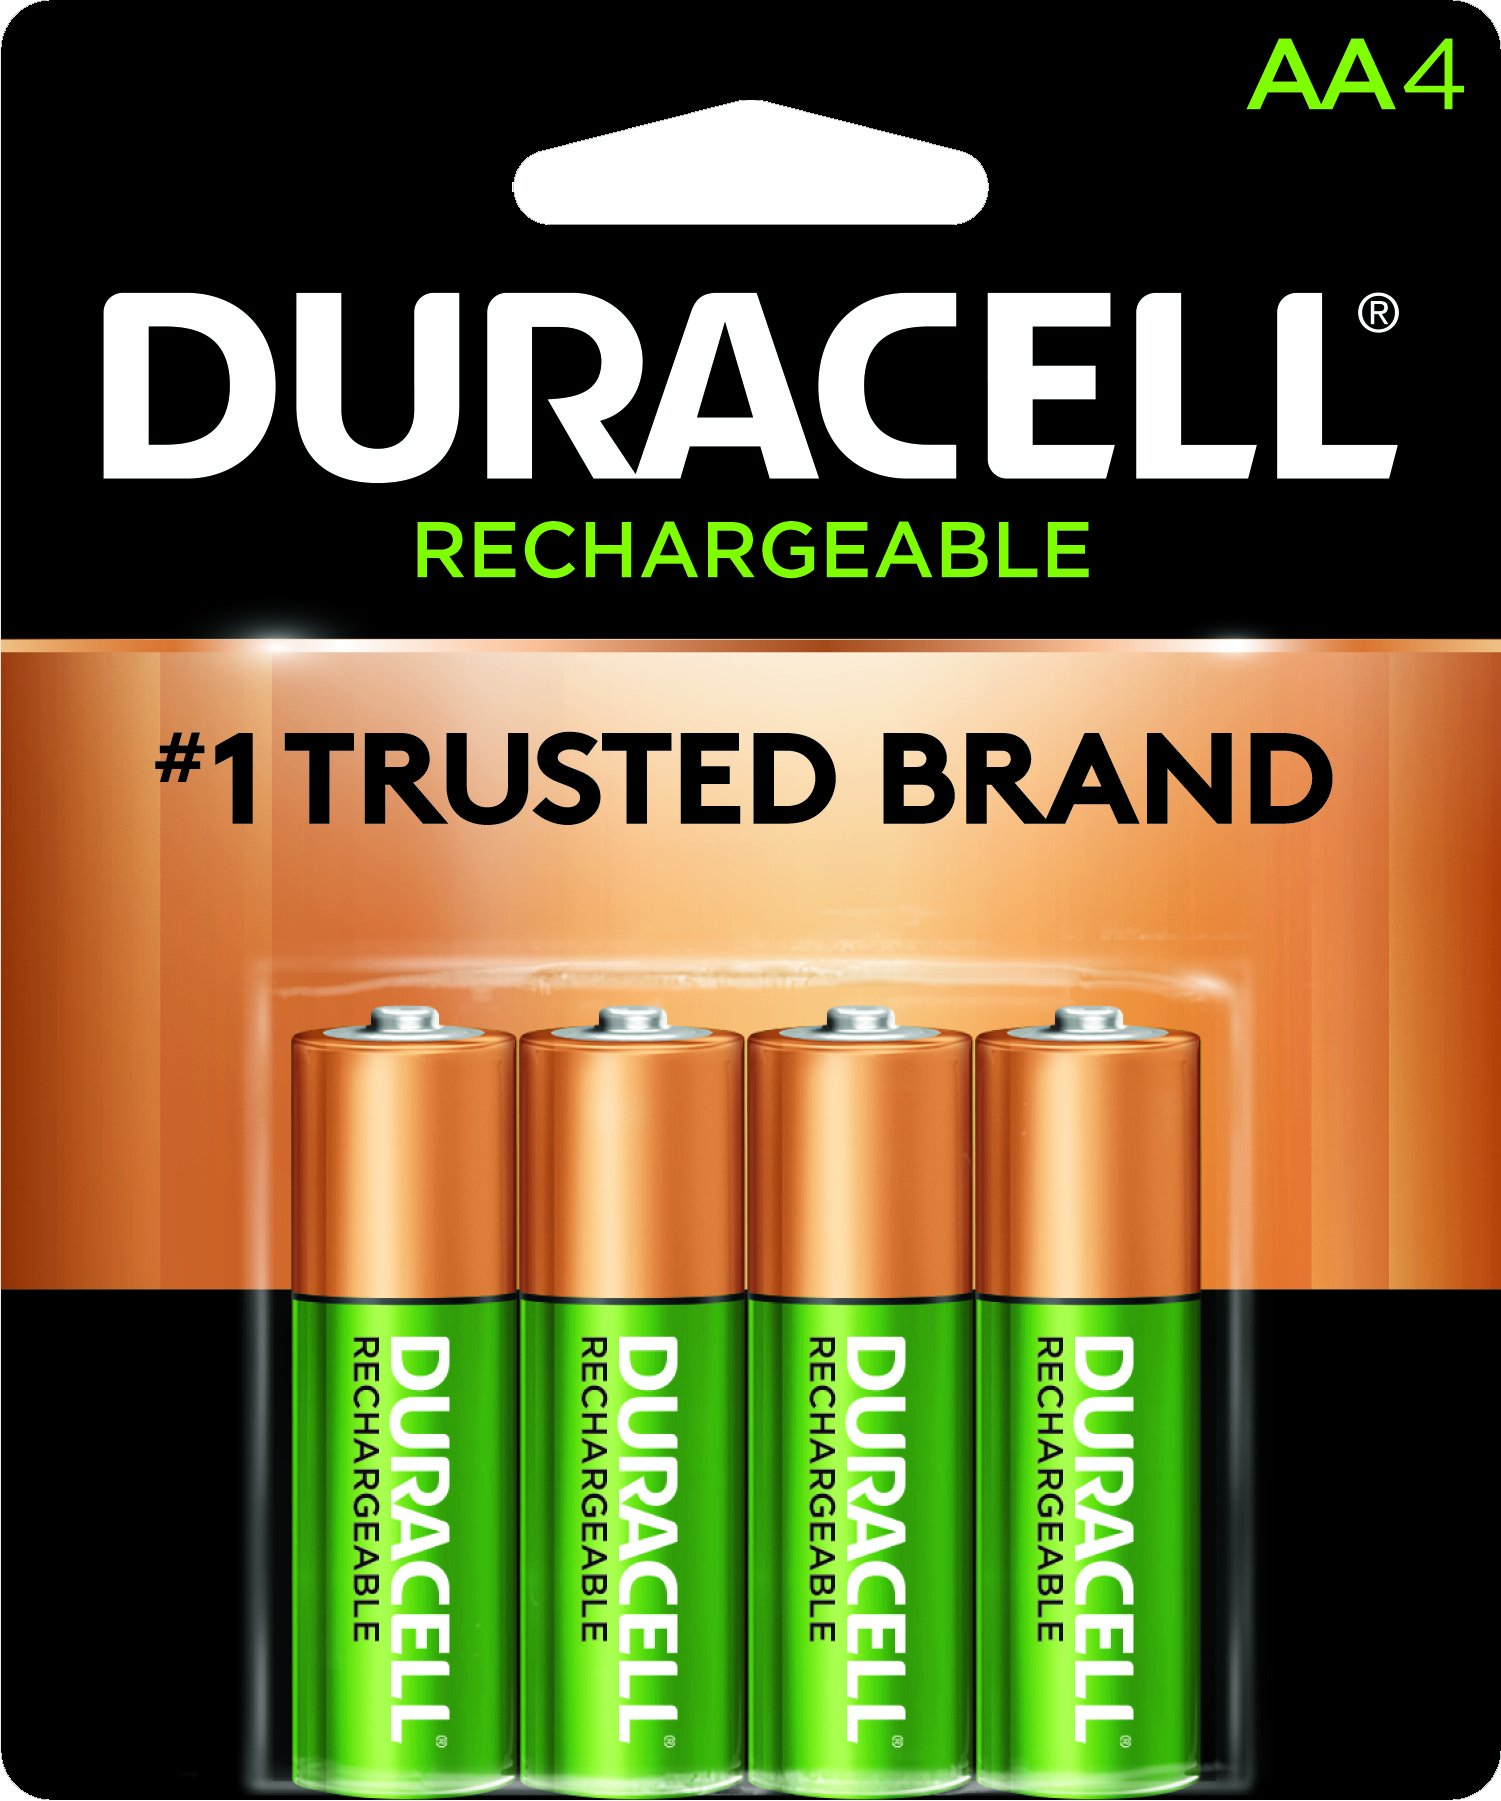 duracell go mobile charger rechargeable includes car adaptor and 2 aa 2 aaa. Black Bedroom Furniture Sets. Home Design Ideas